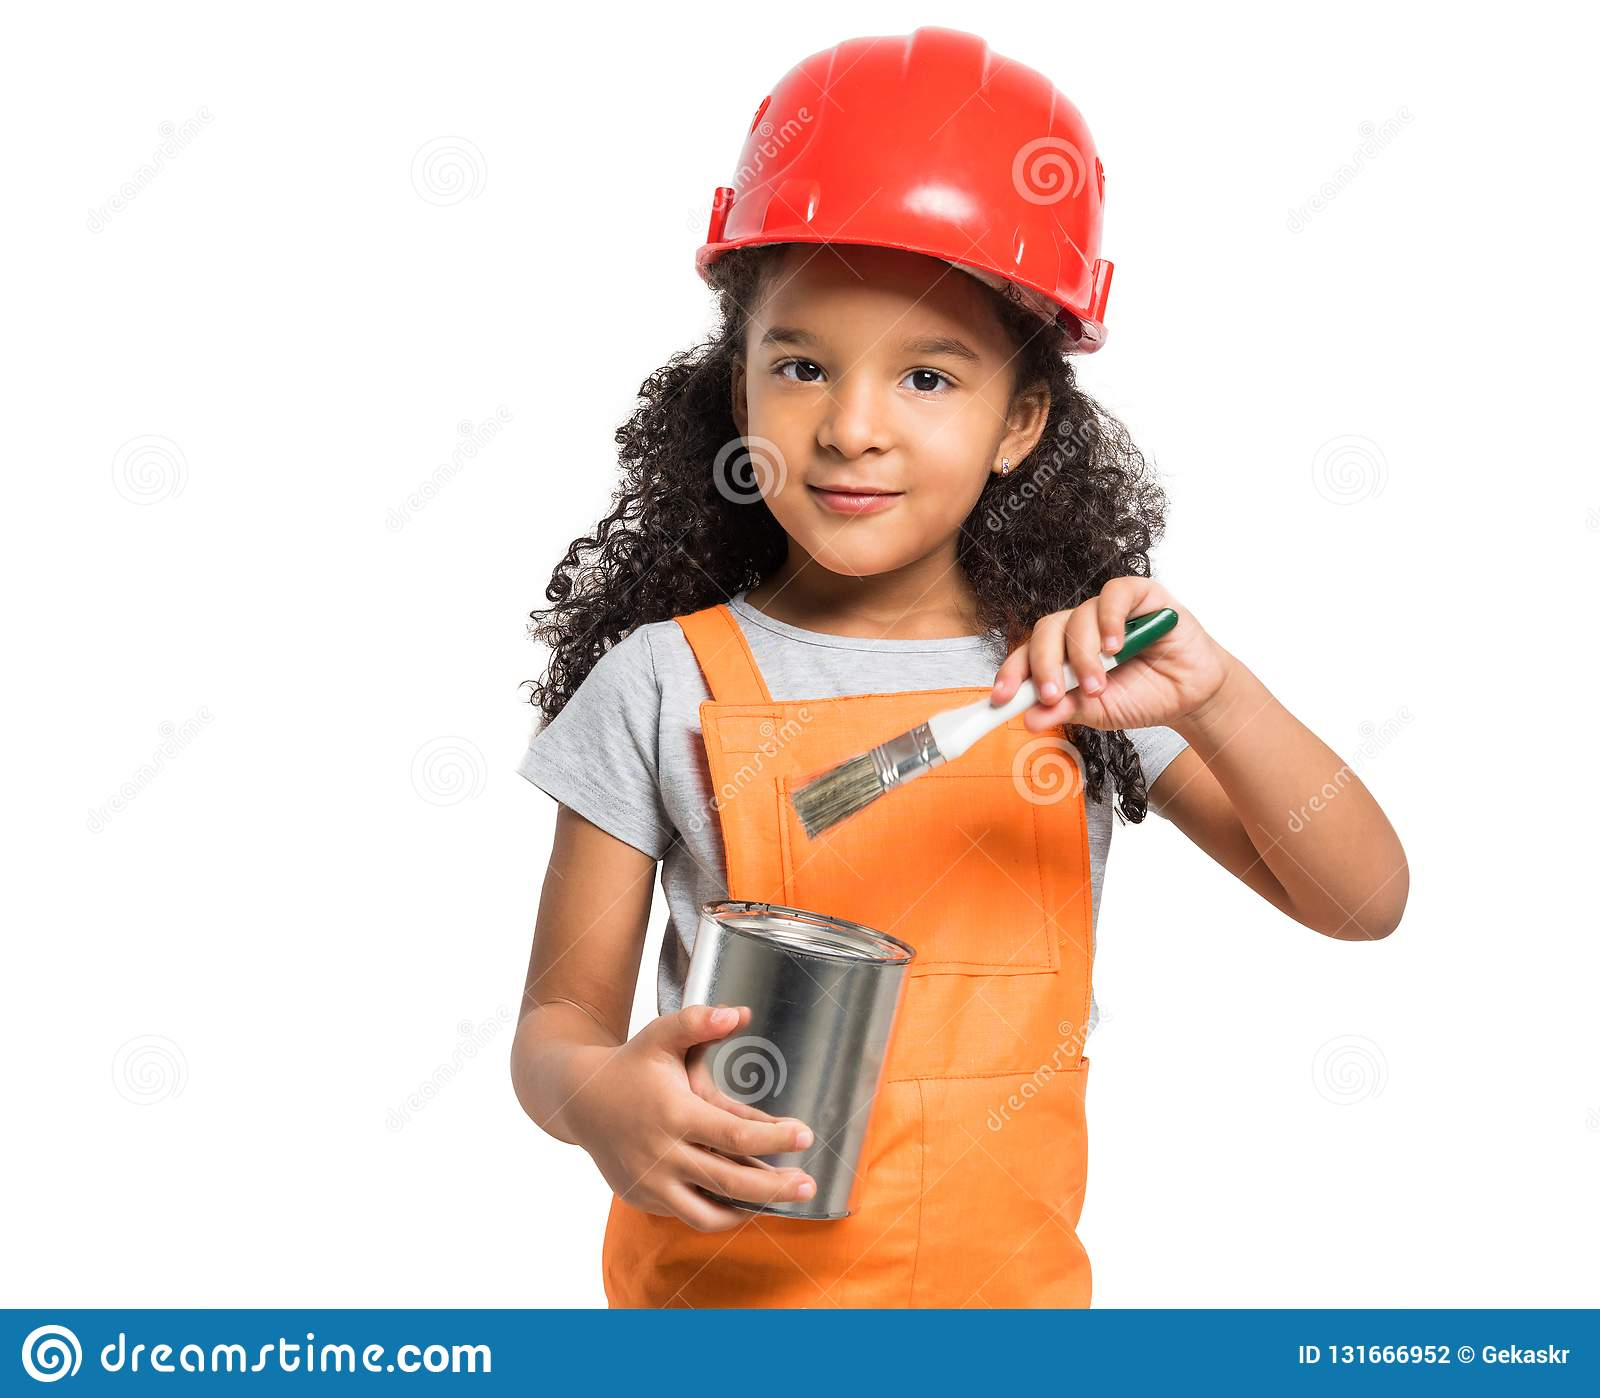 Cute little girl in orange uniform with paint tin in hands